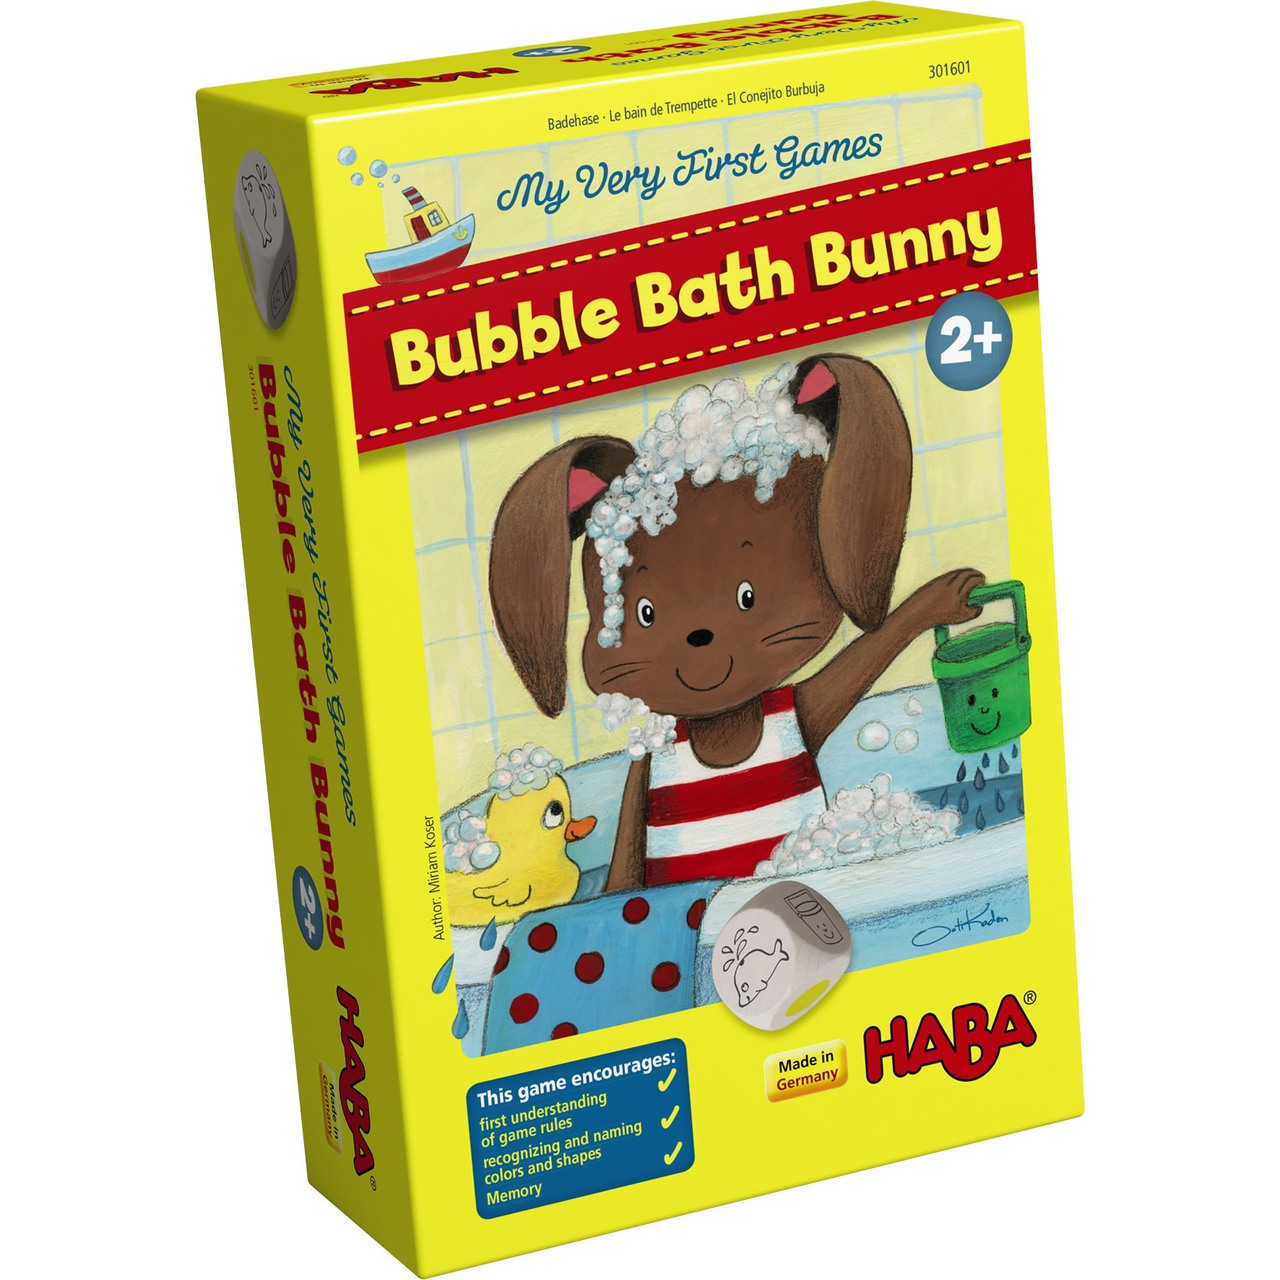 Bubble Bath Bunny: My Very First Games from HABA Games